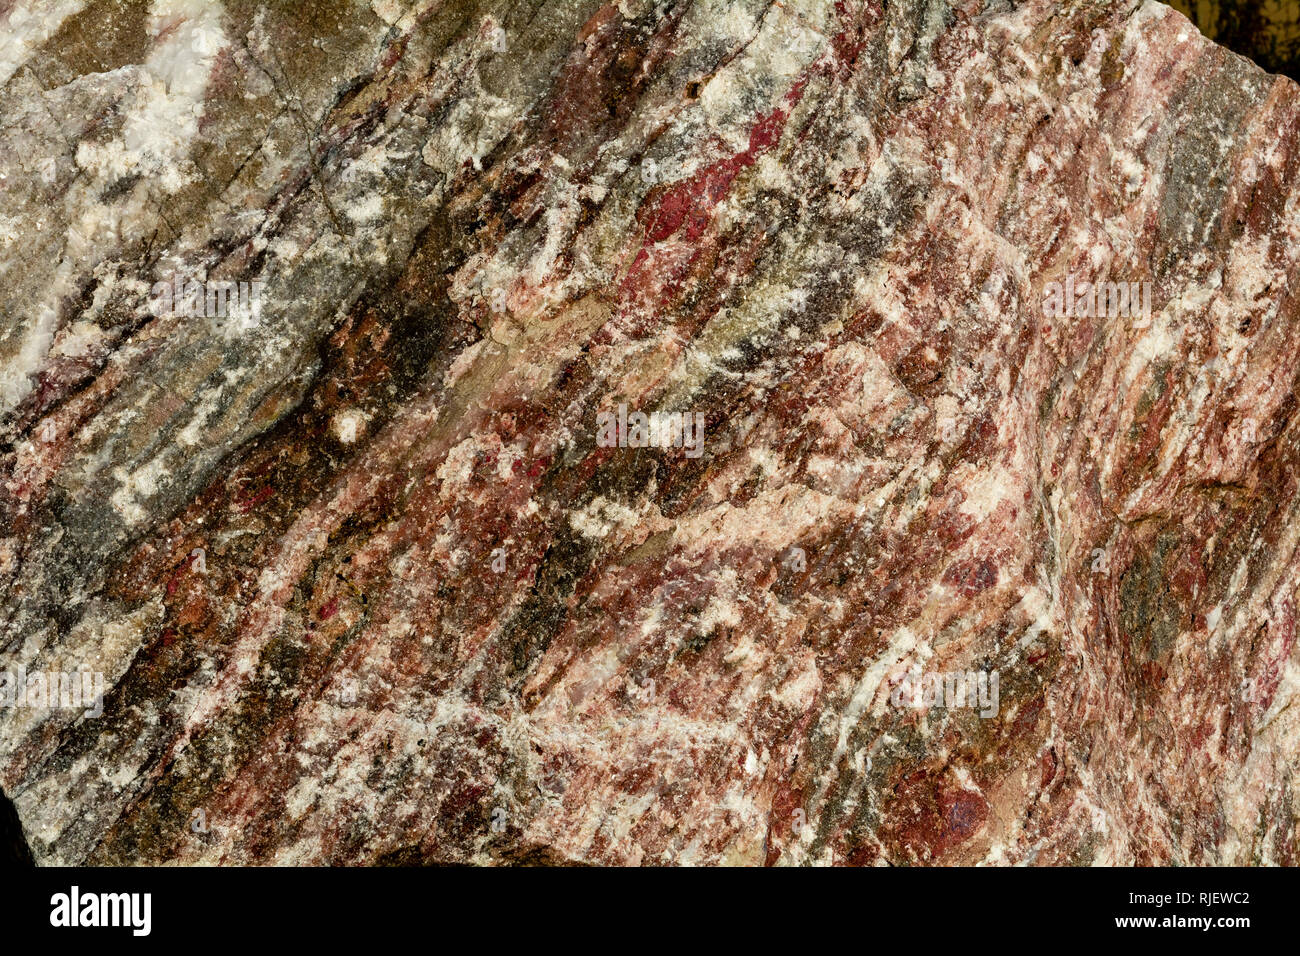 Marble is a metamorphic rock composed of recrystallized carbonate minerals, most commonly calcite or dolomite- geology texture or background - Stock Image